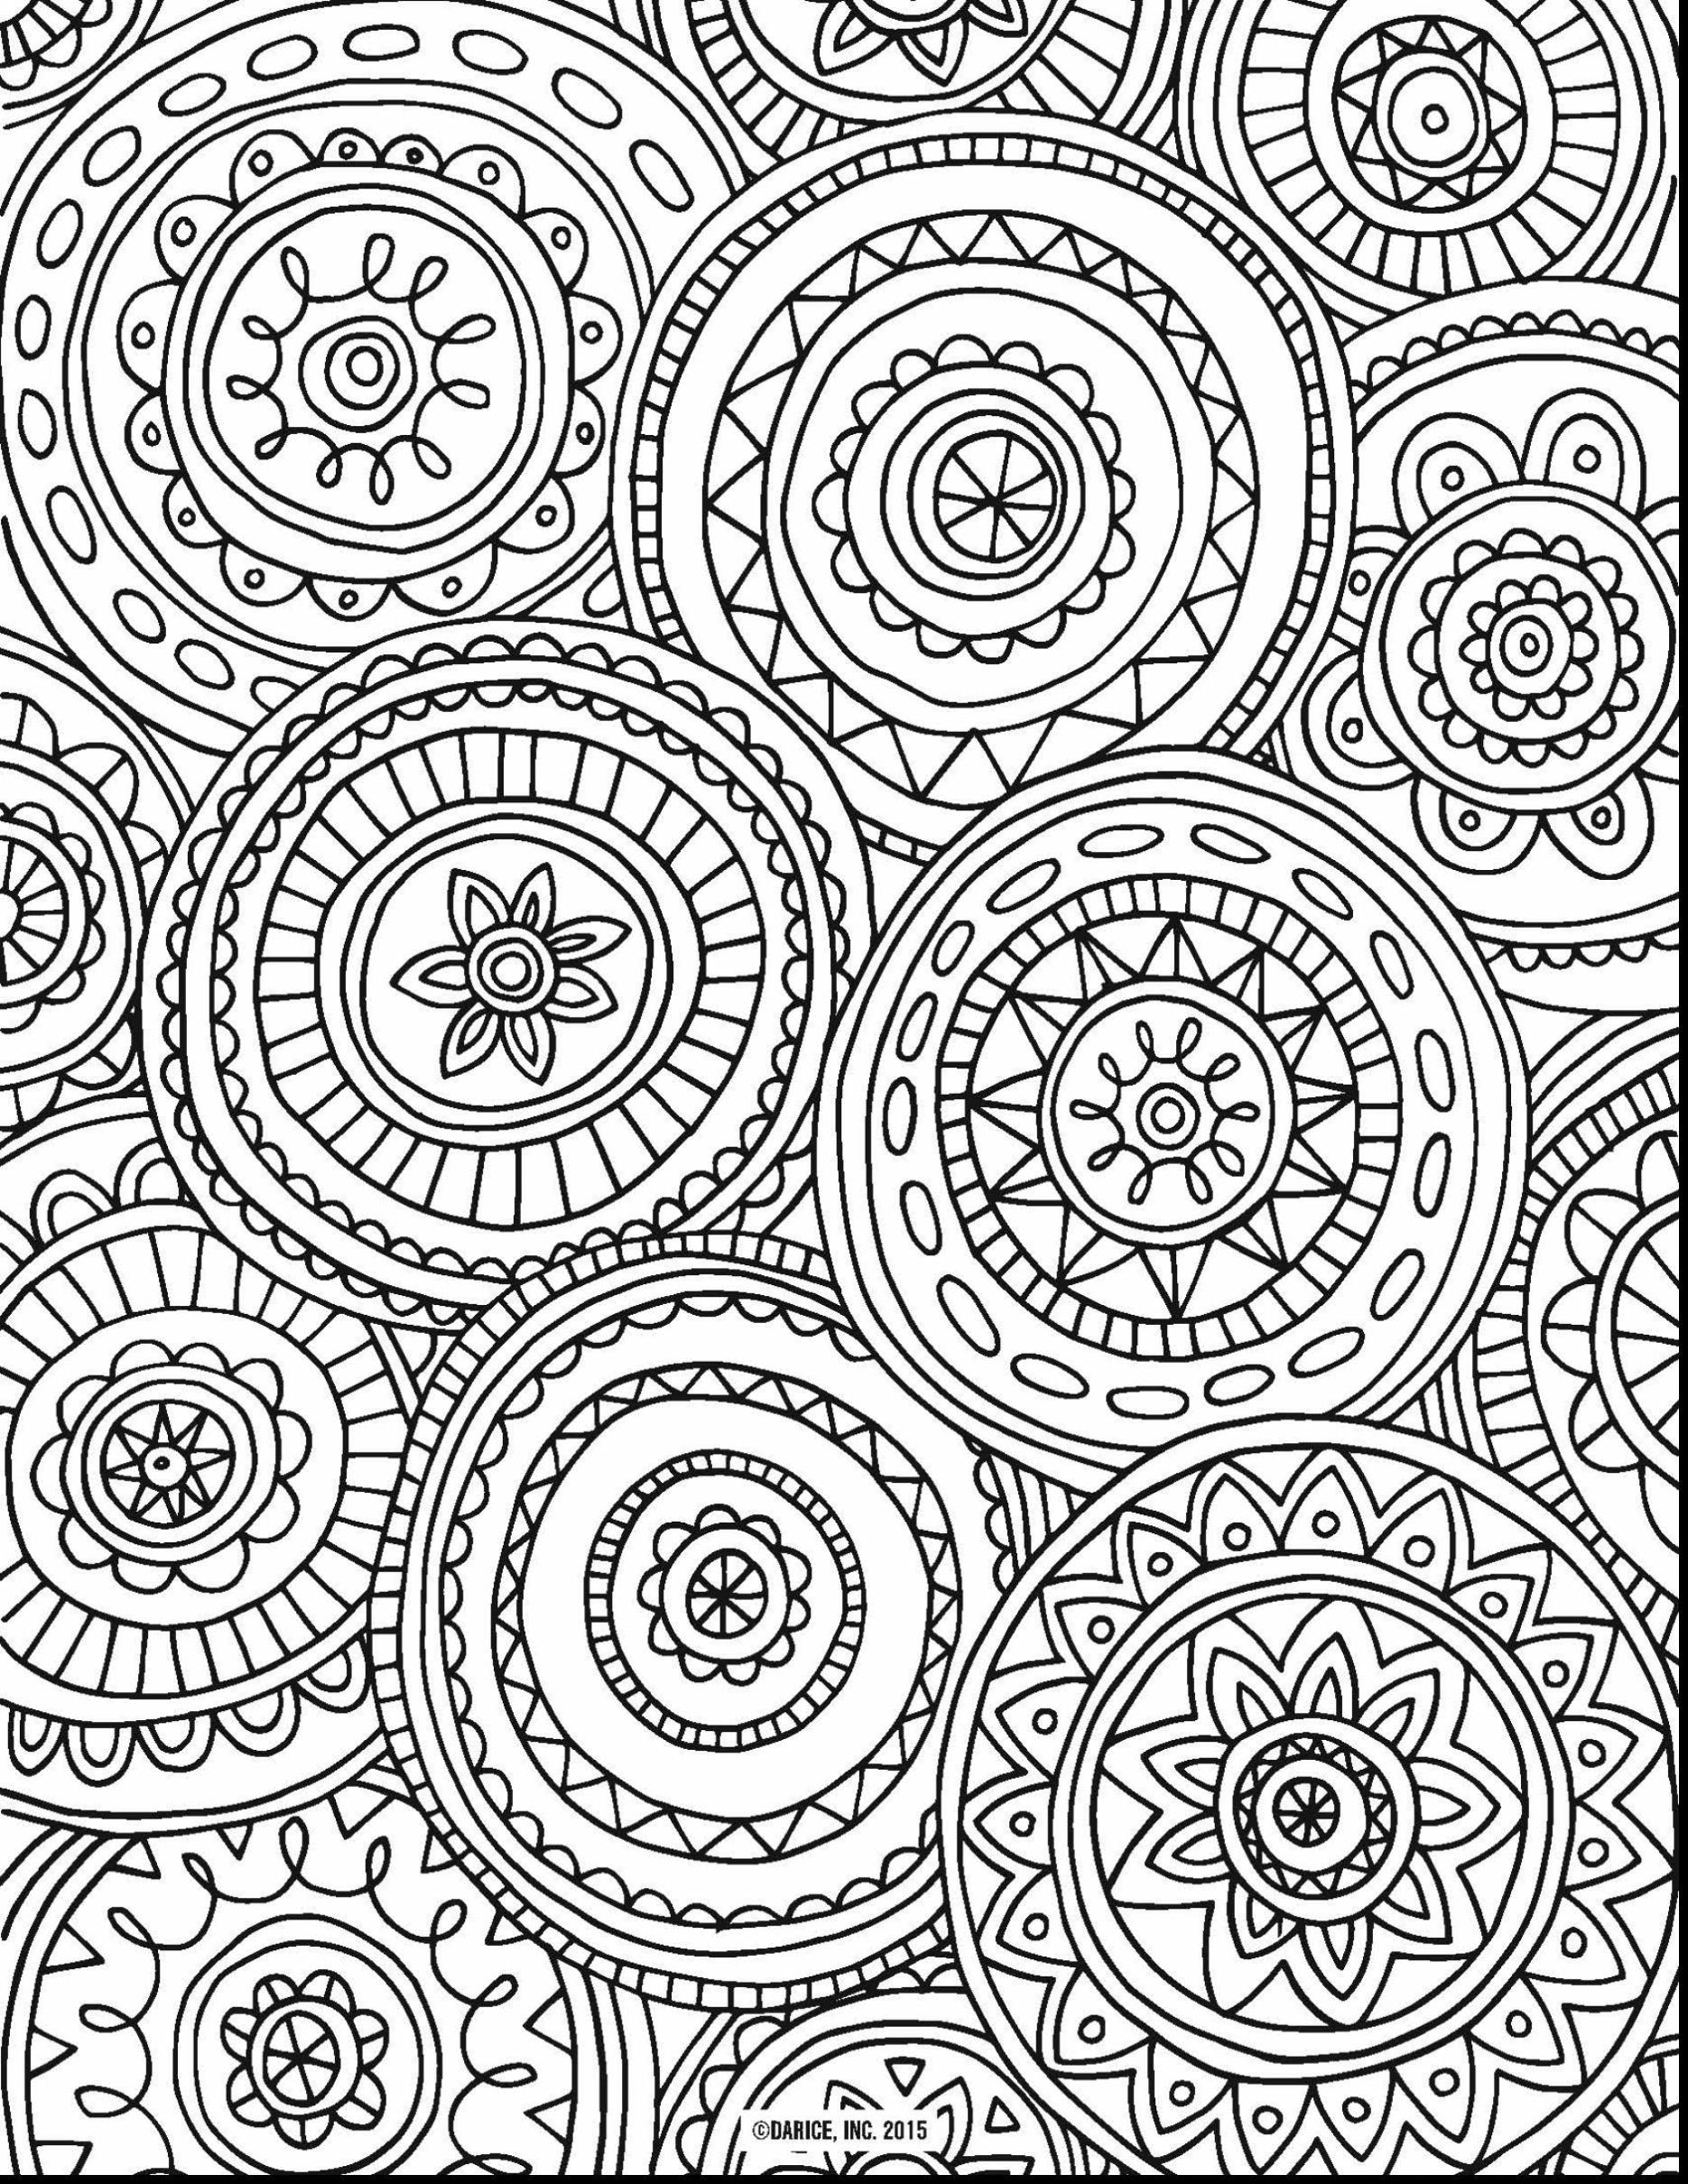 Pdf Coloring Pages For Kids Coloring Images Of Coloring Pages For Adults Free Printable